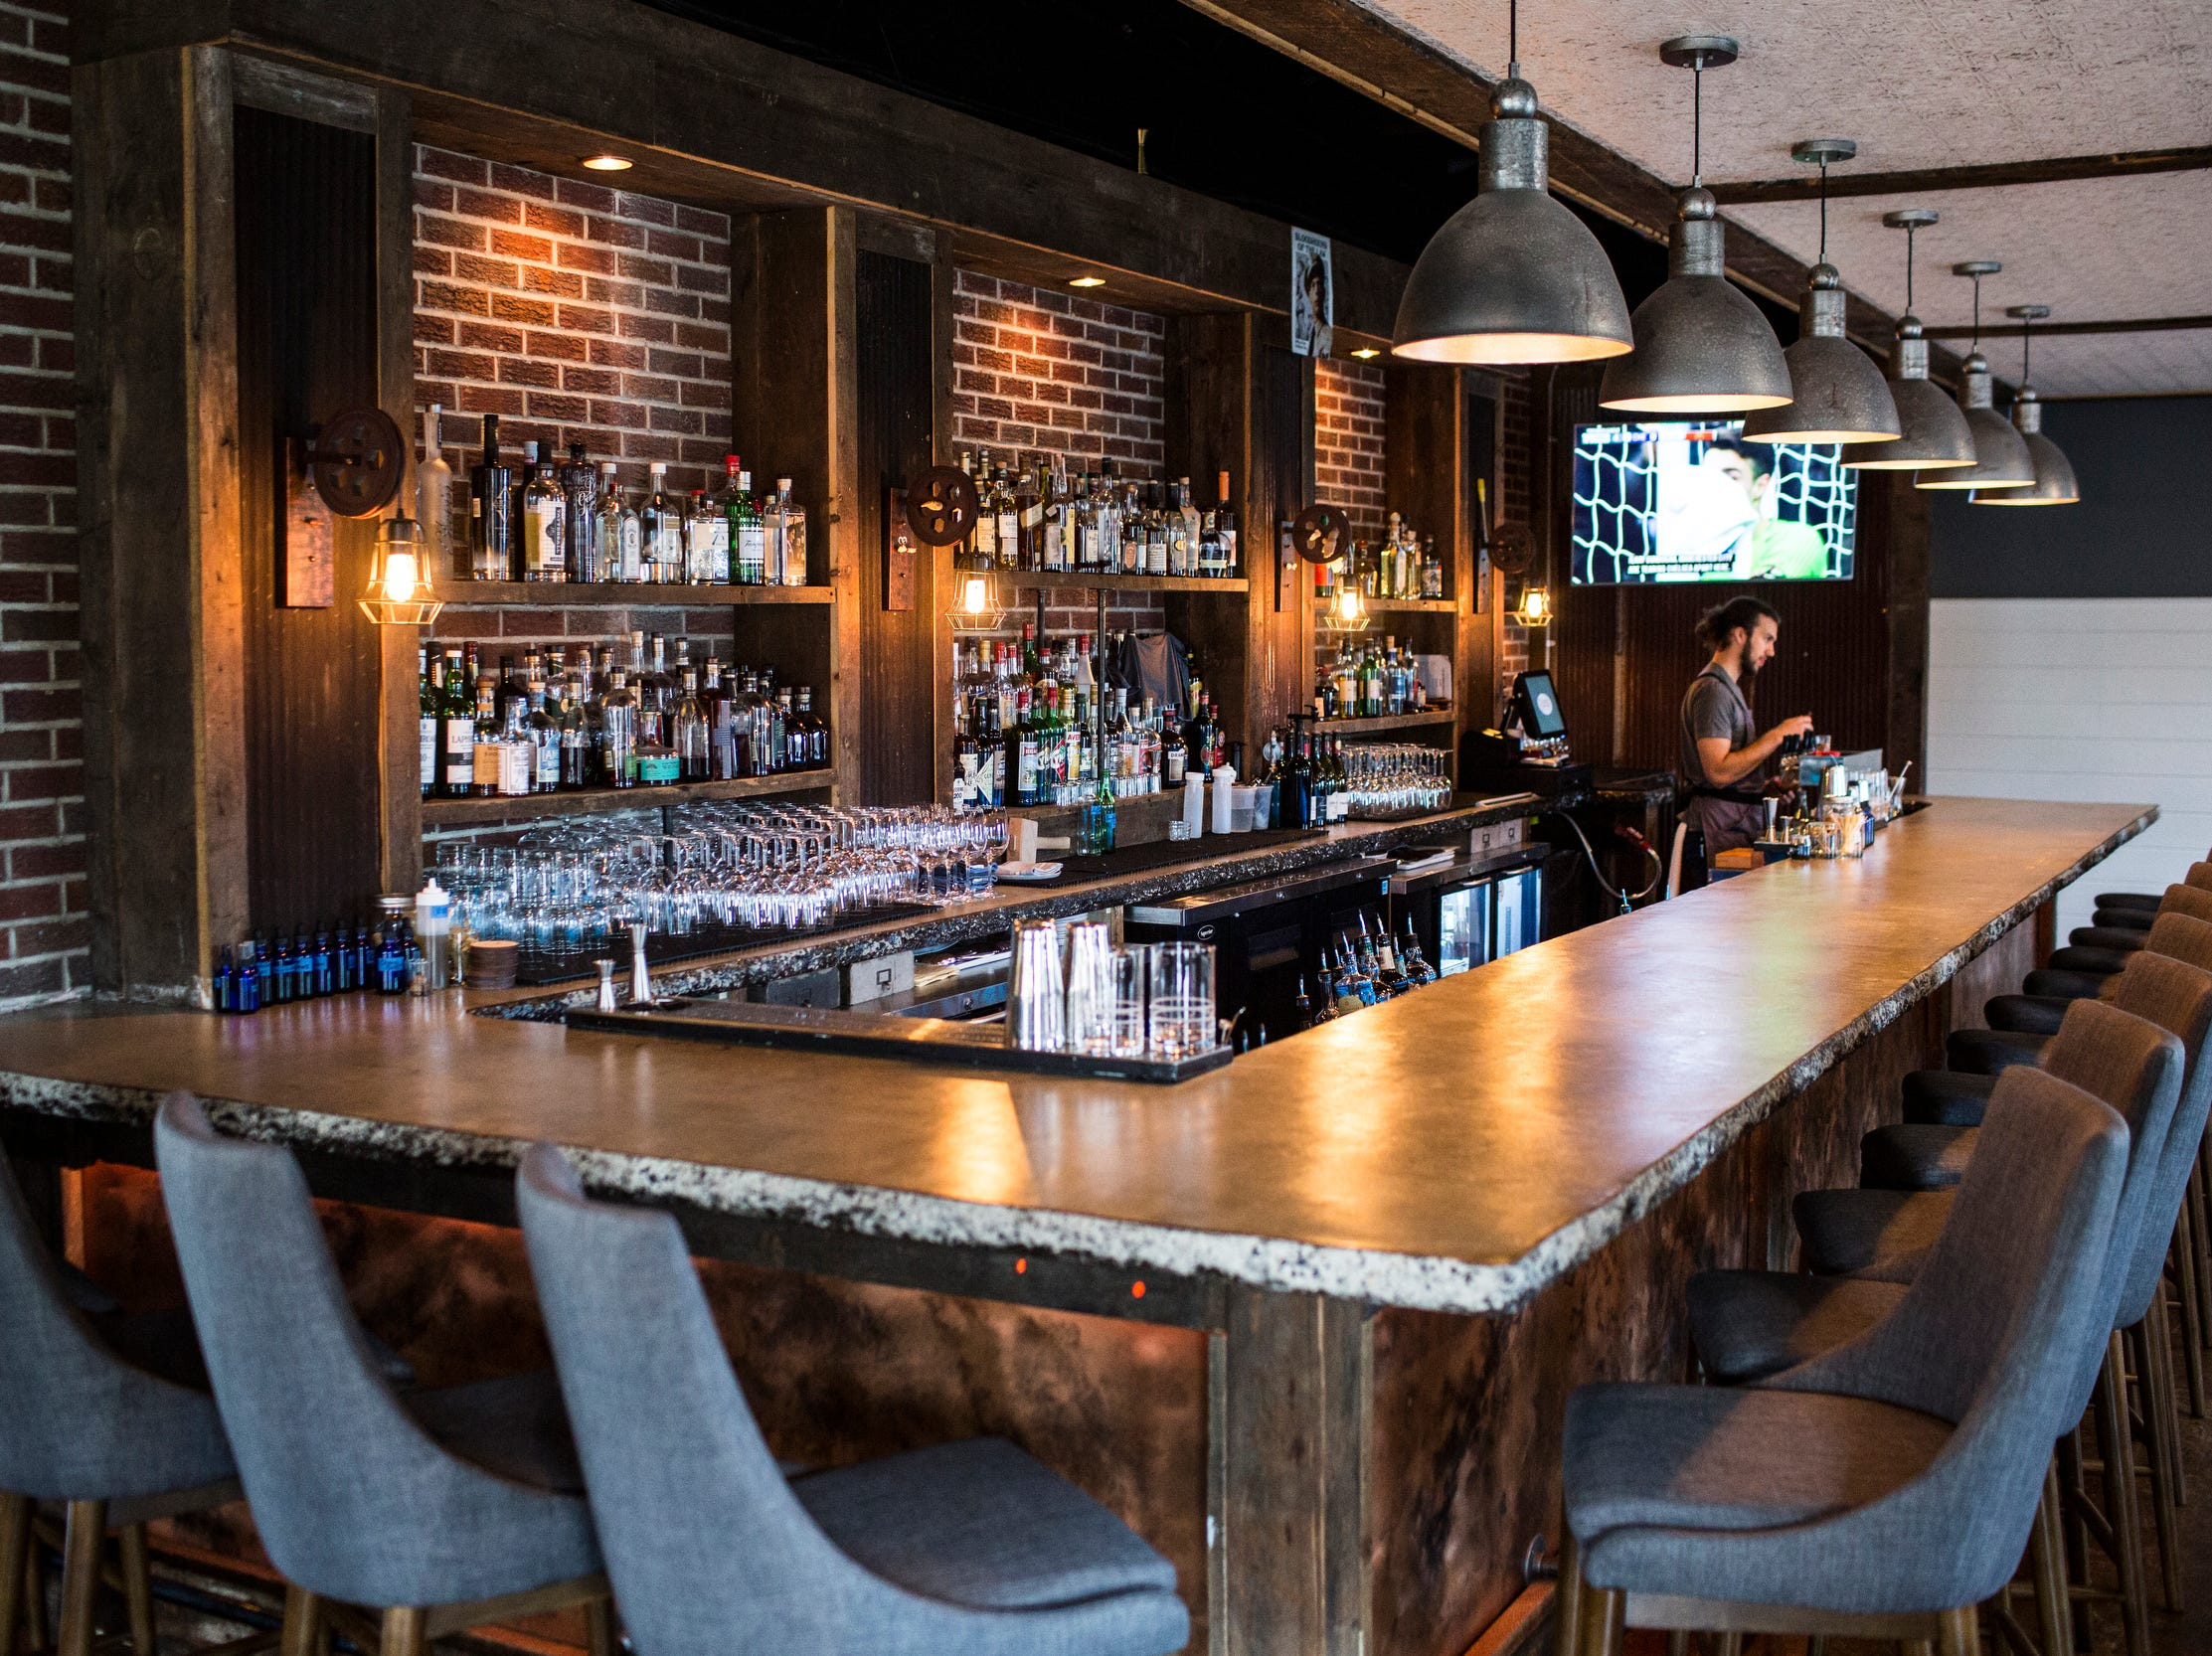 February 10, 2019 - Sunday brunch is available at PO Press Public House & Provisions in Collierville. PO Press Public House & Provisions is located at 148 N Main St. in Collierville.